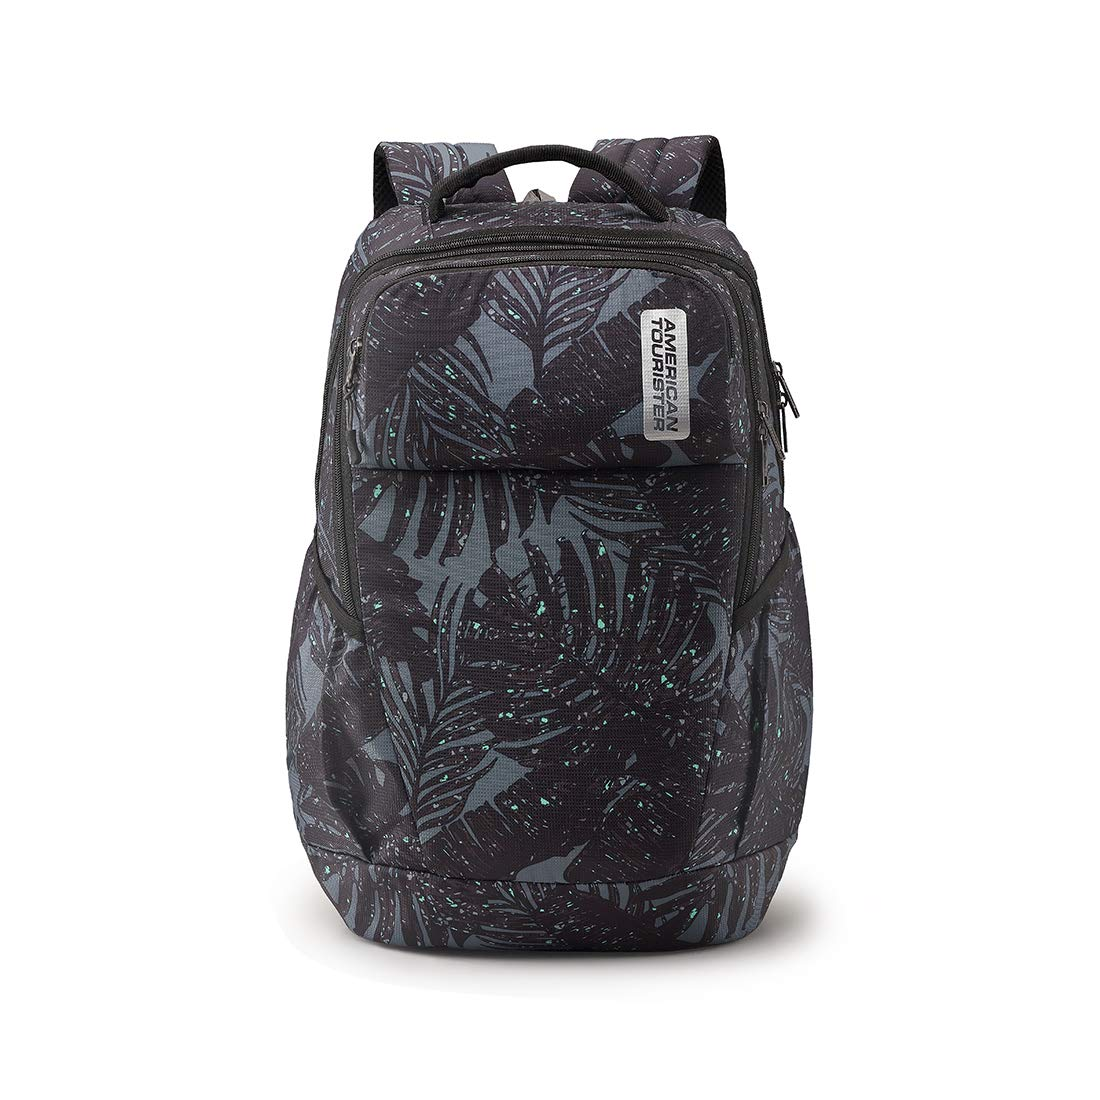 American Tourister Crone 25 Ltrs Black Casual Backpack (FG8